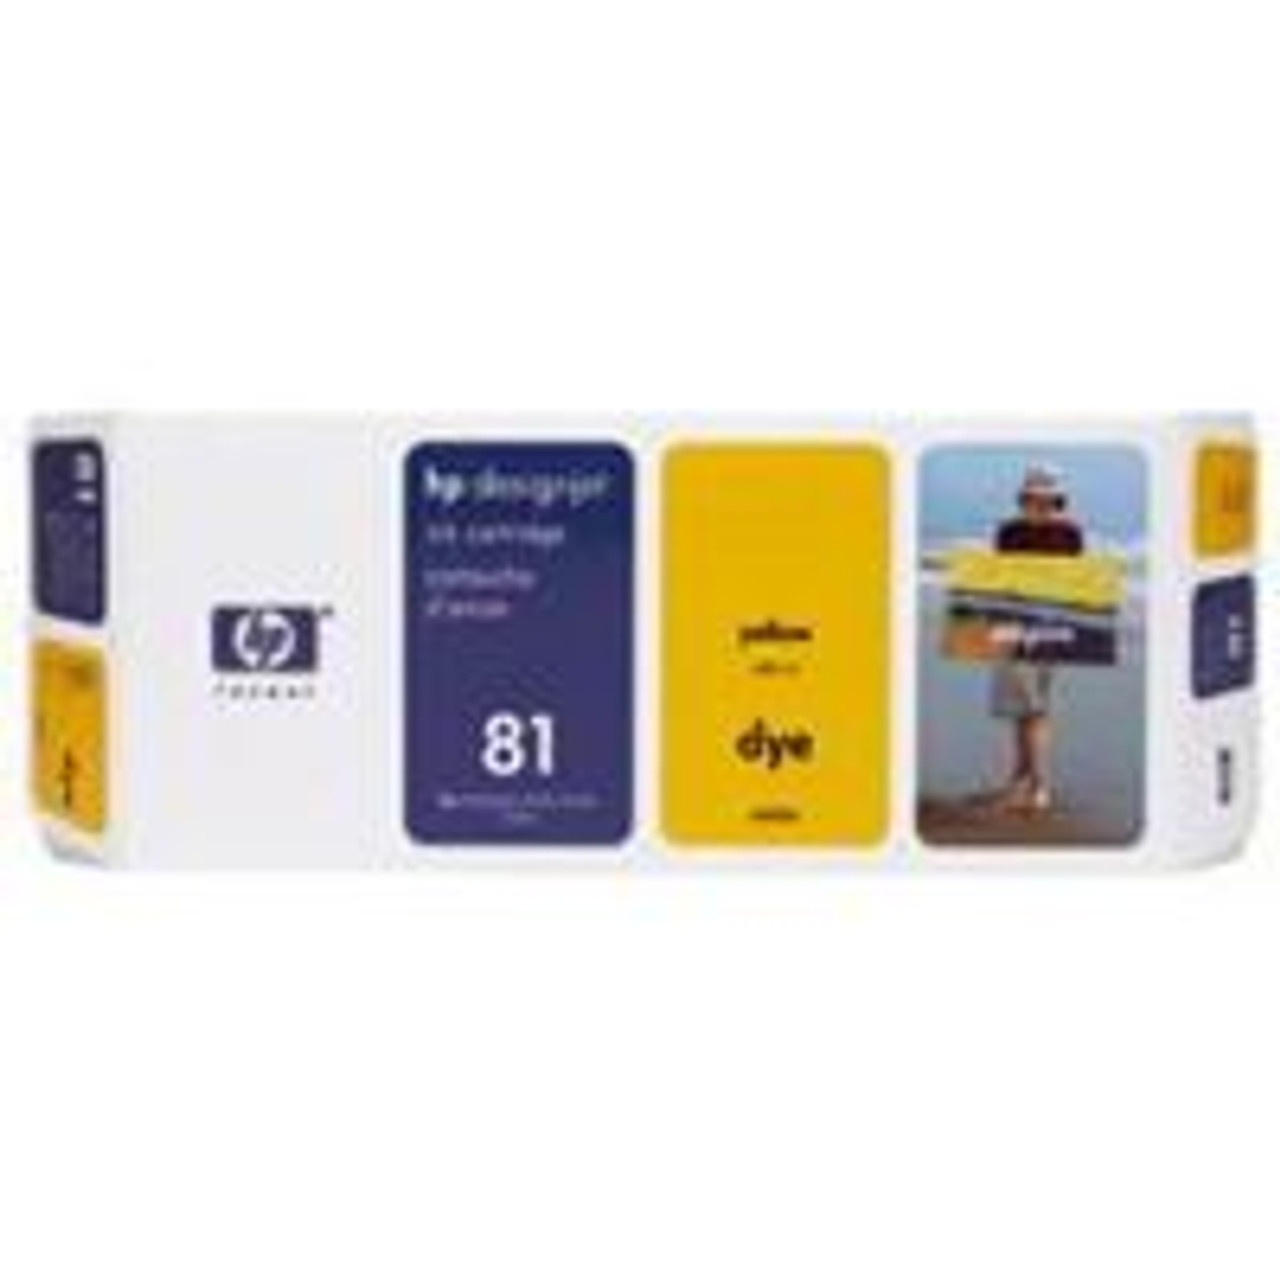 Image for HP 81 Yellow Dye Ink Cartridge (C4933A) CX Computer Superstore